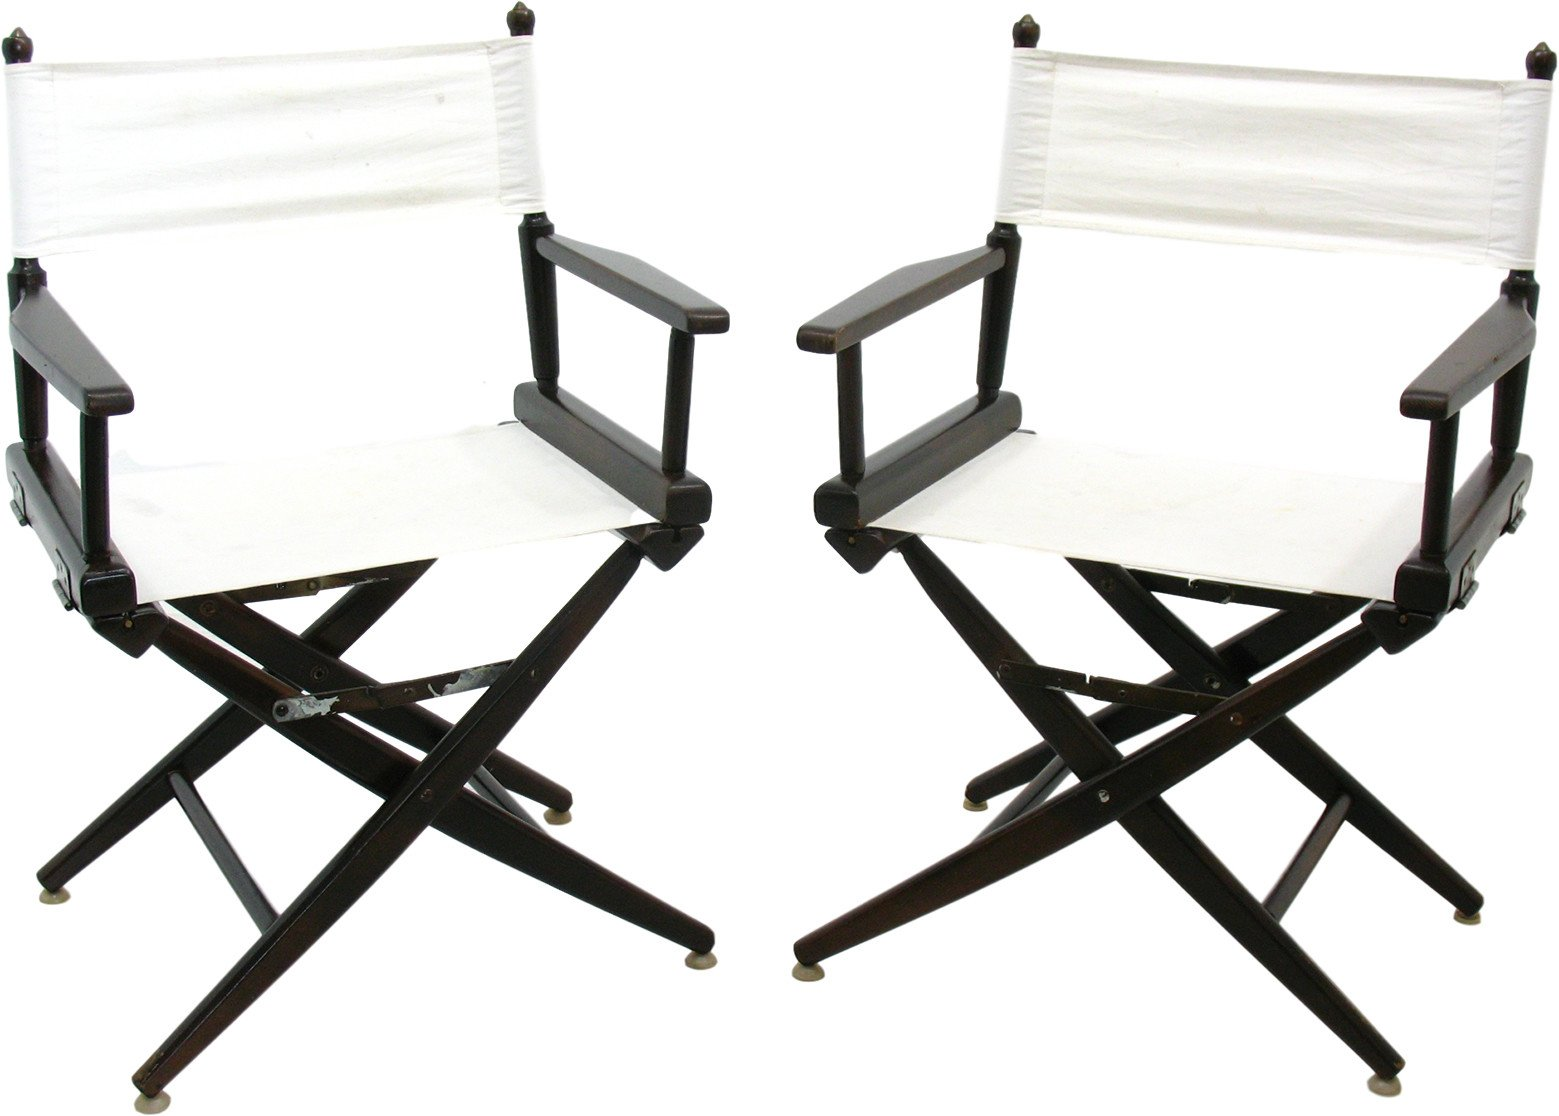 Pair of Foldable Chairs, 1970s